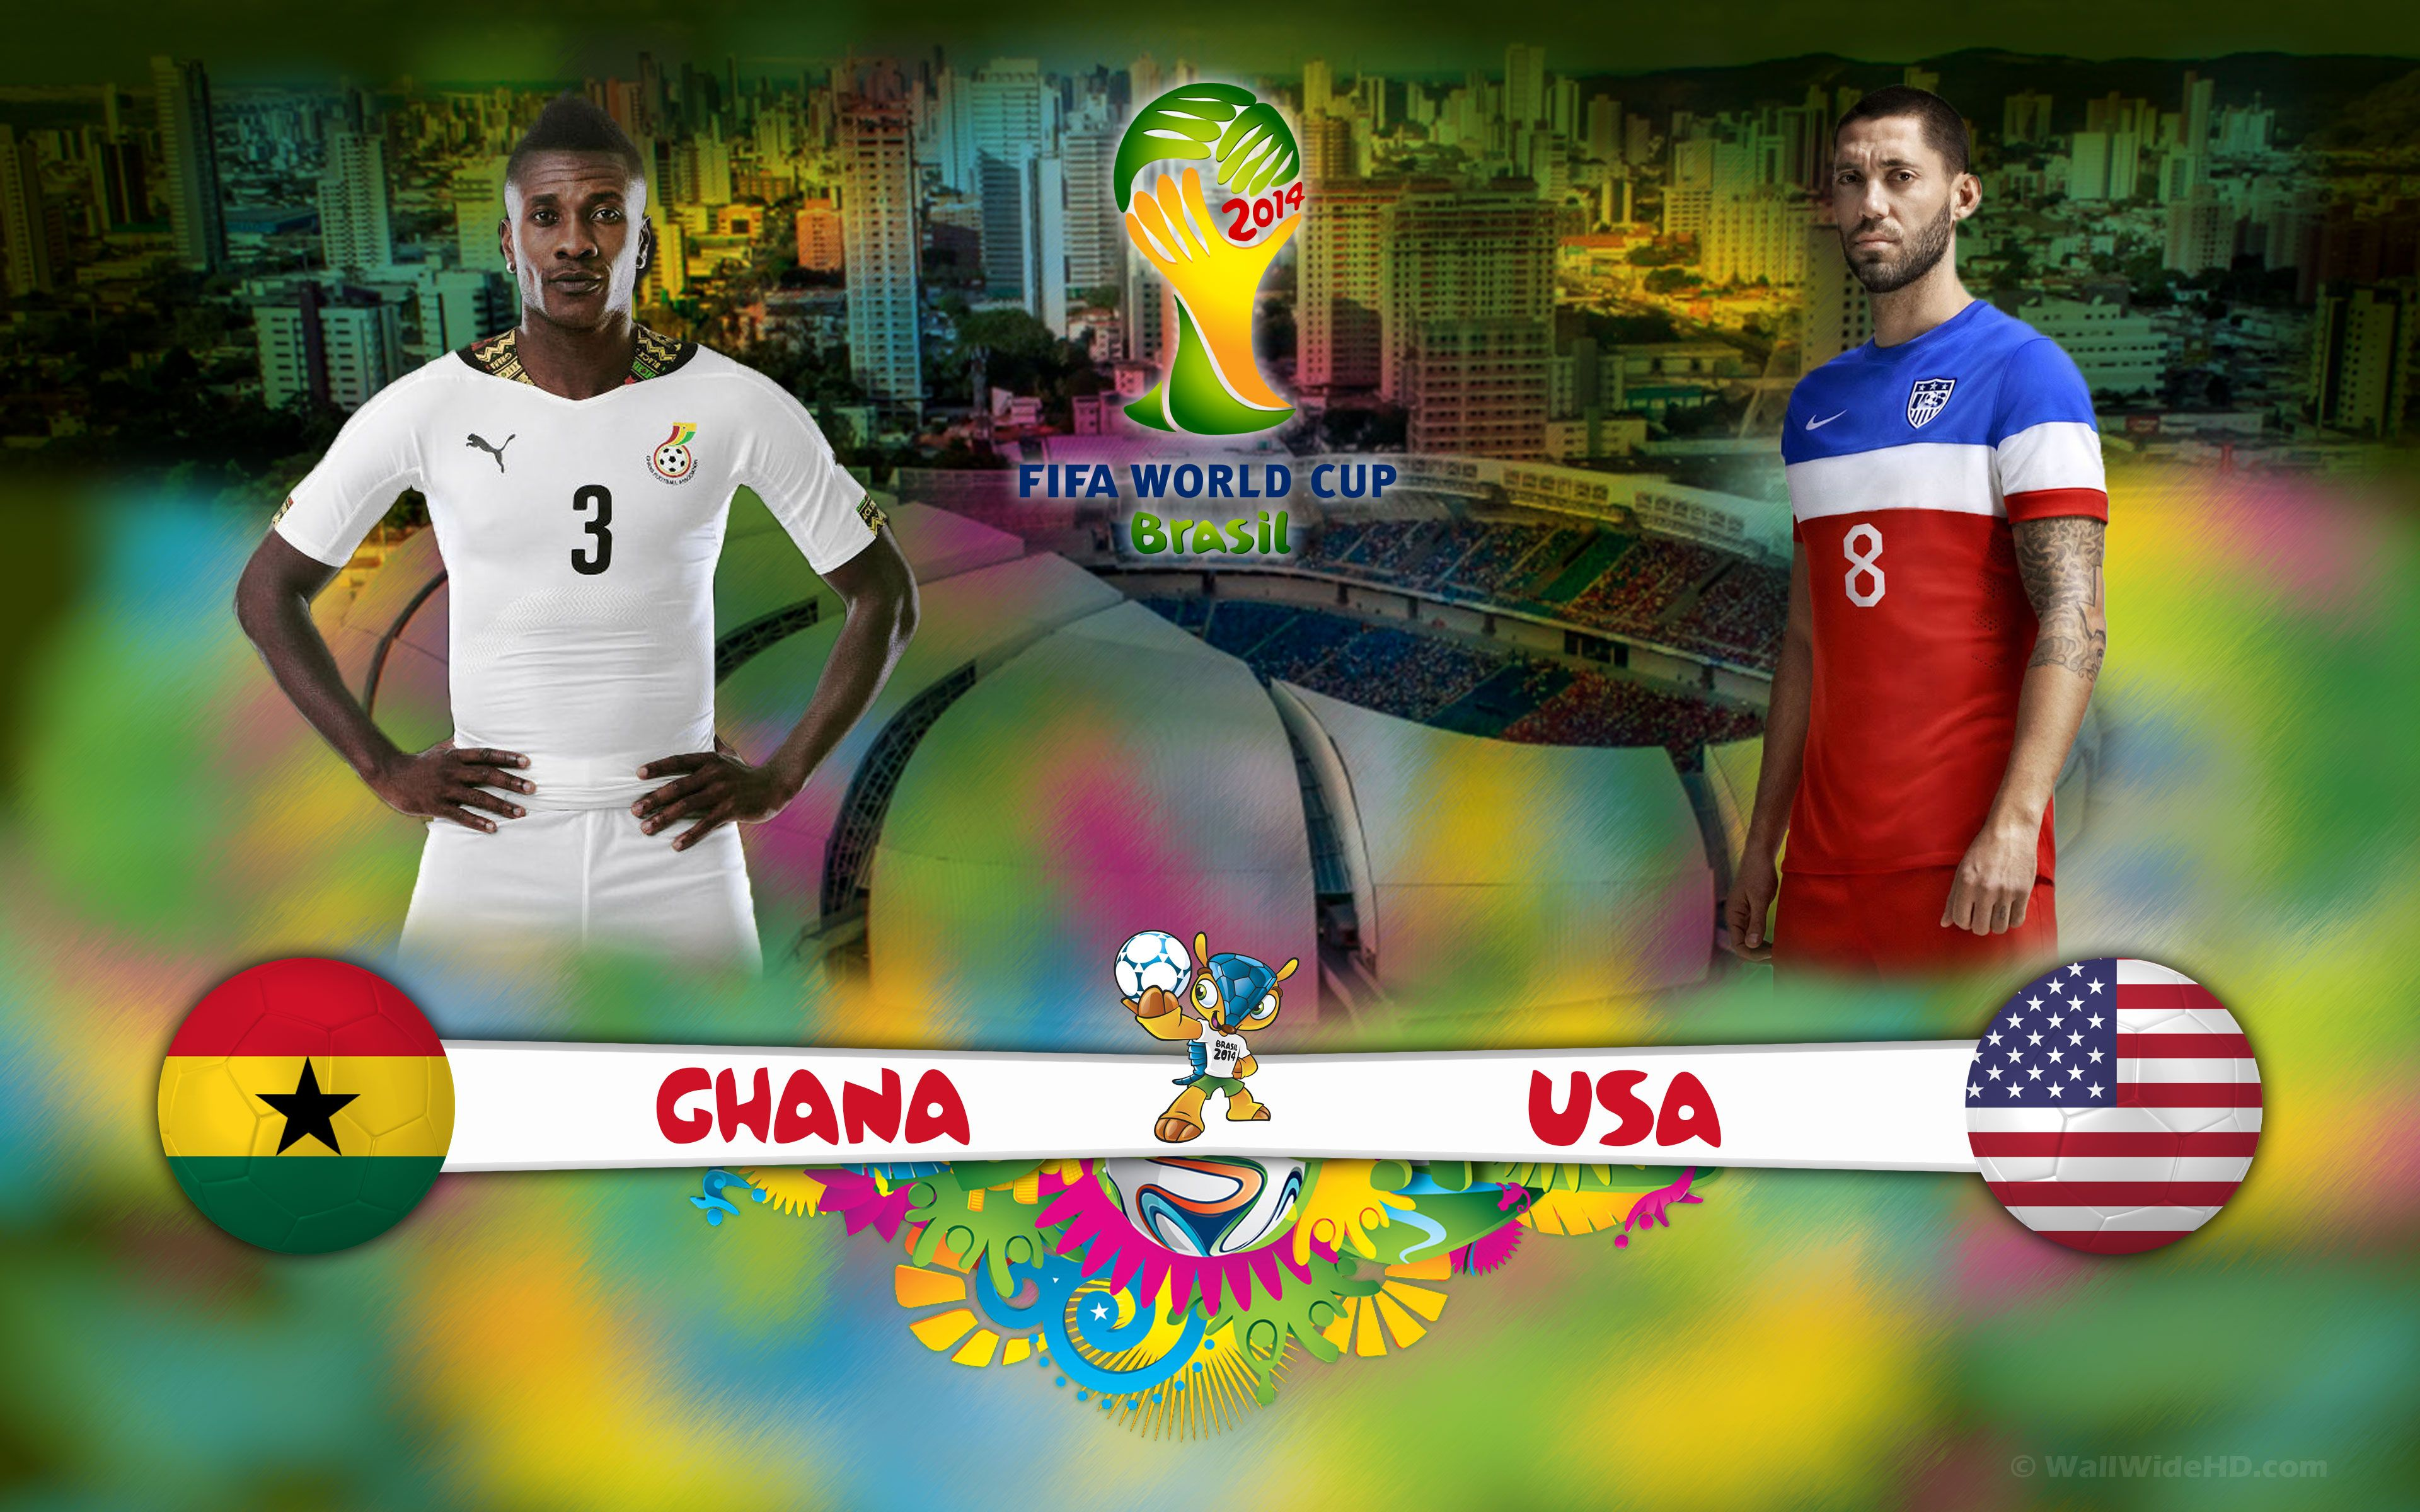 Ghana Vs United States World Cup 1 2 World Cup Groups World Cup Usa World Cup